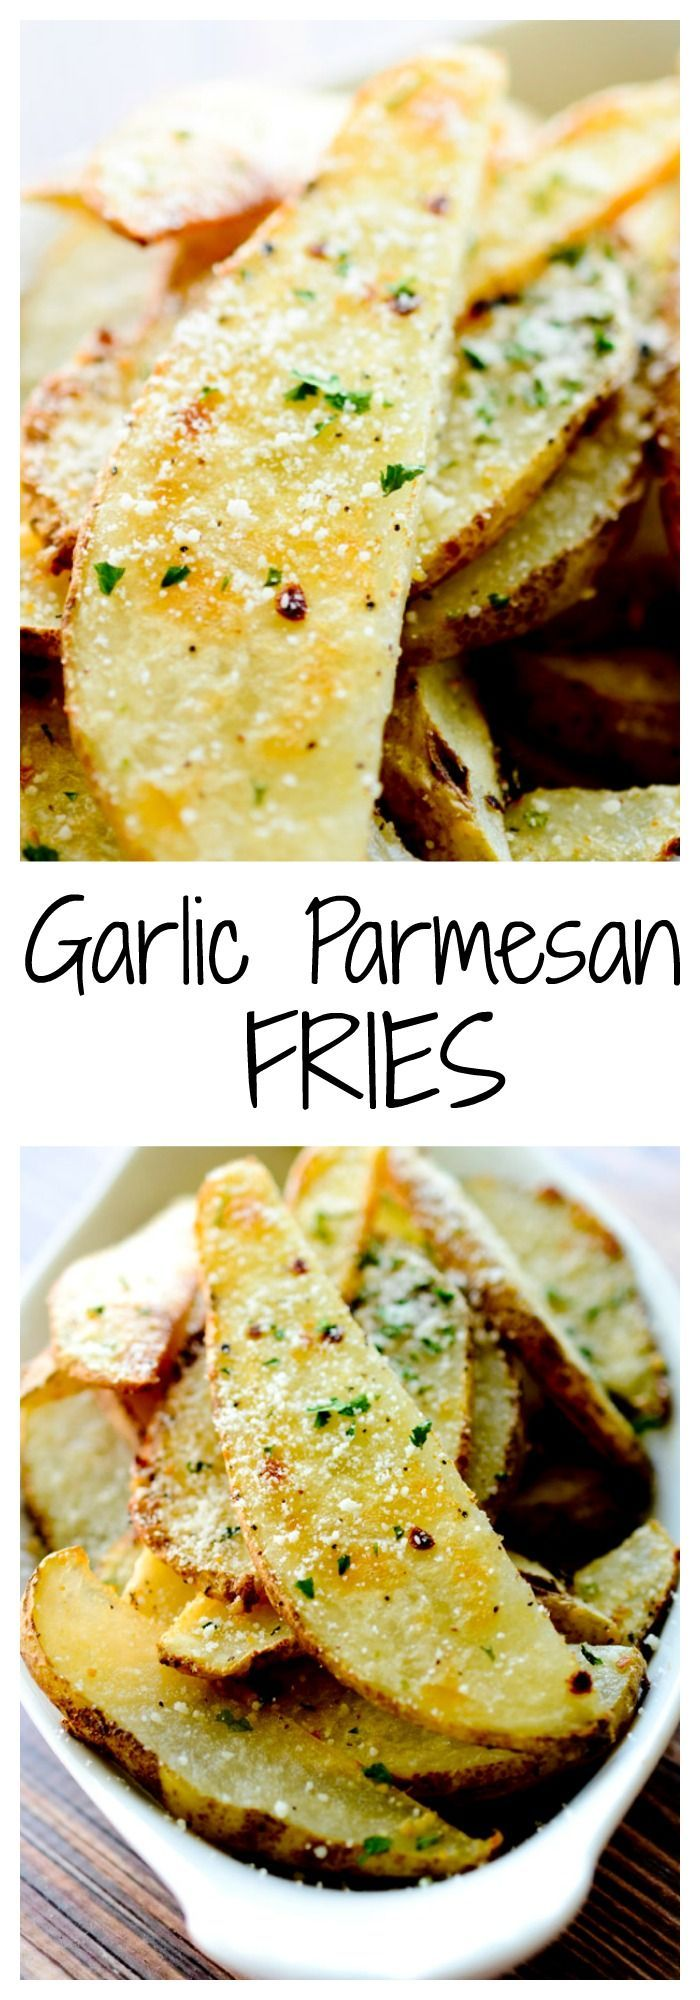 Garlic Parmesan Fries - great on their own or with a meal! @jgisvold01